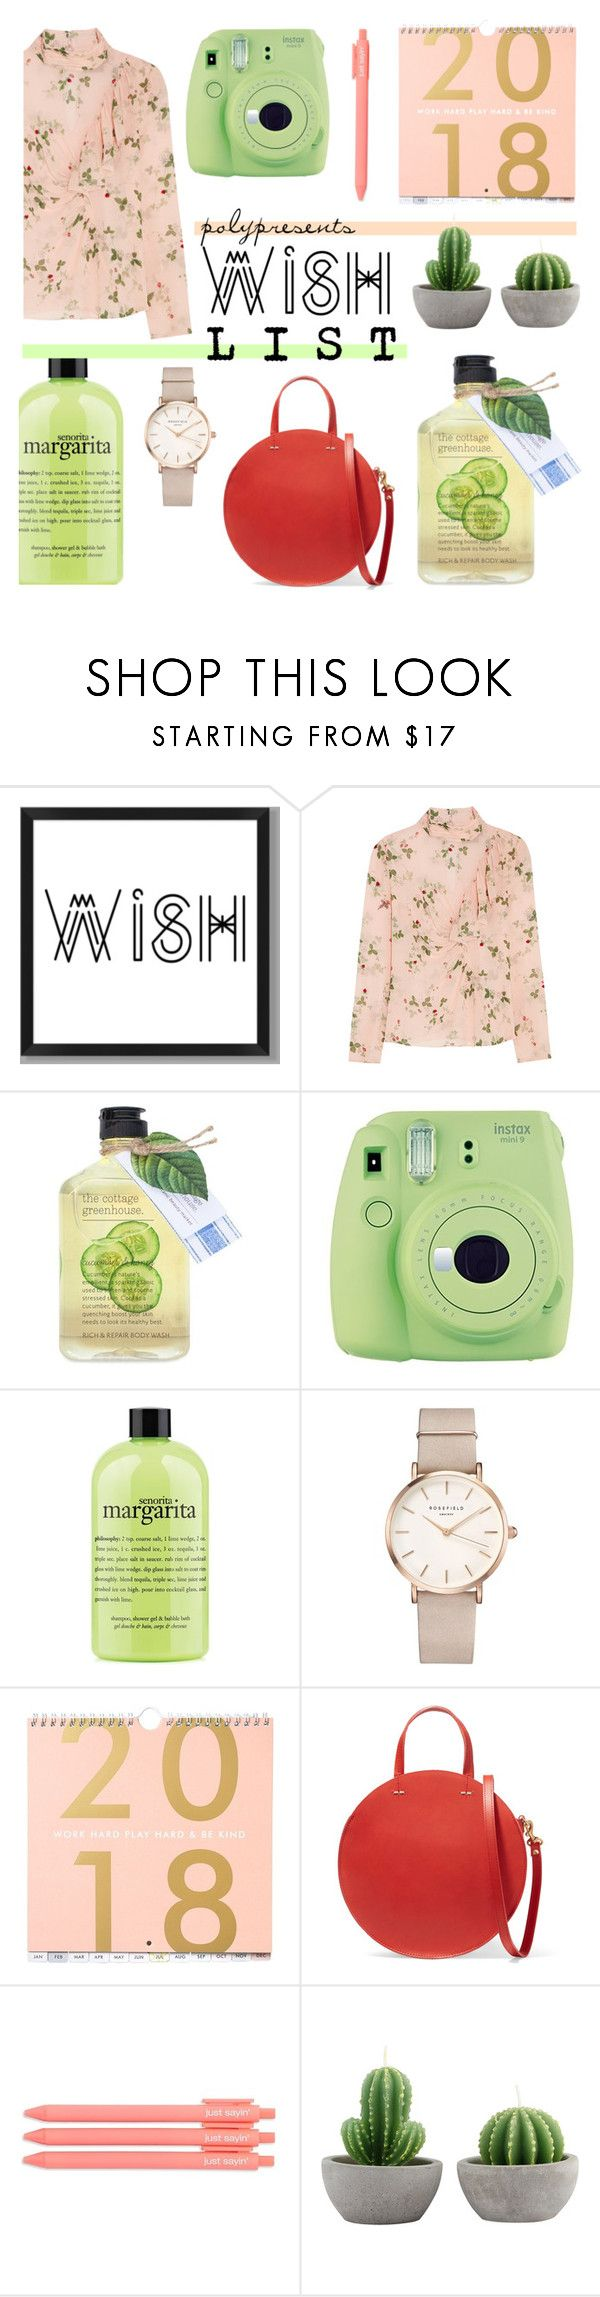 """""""#PolyPresents: Wish List"""" by anishabgv ❤ liked on Polyvore featuring PBteen, Topshop Unique, Fujifilm, philosophy, ROSEFIELD, Clare V., contestentry and polyPresents"""